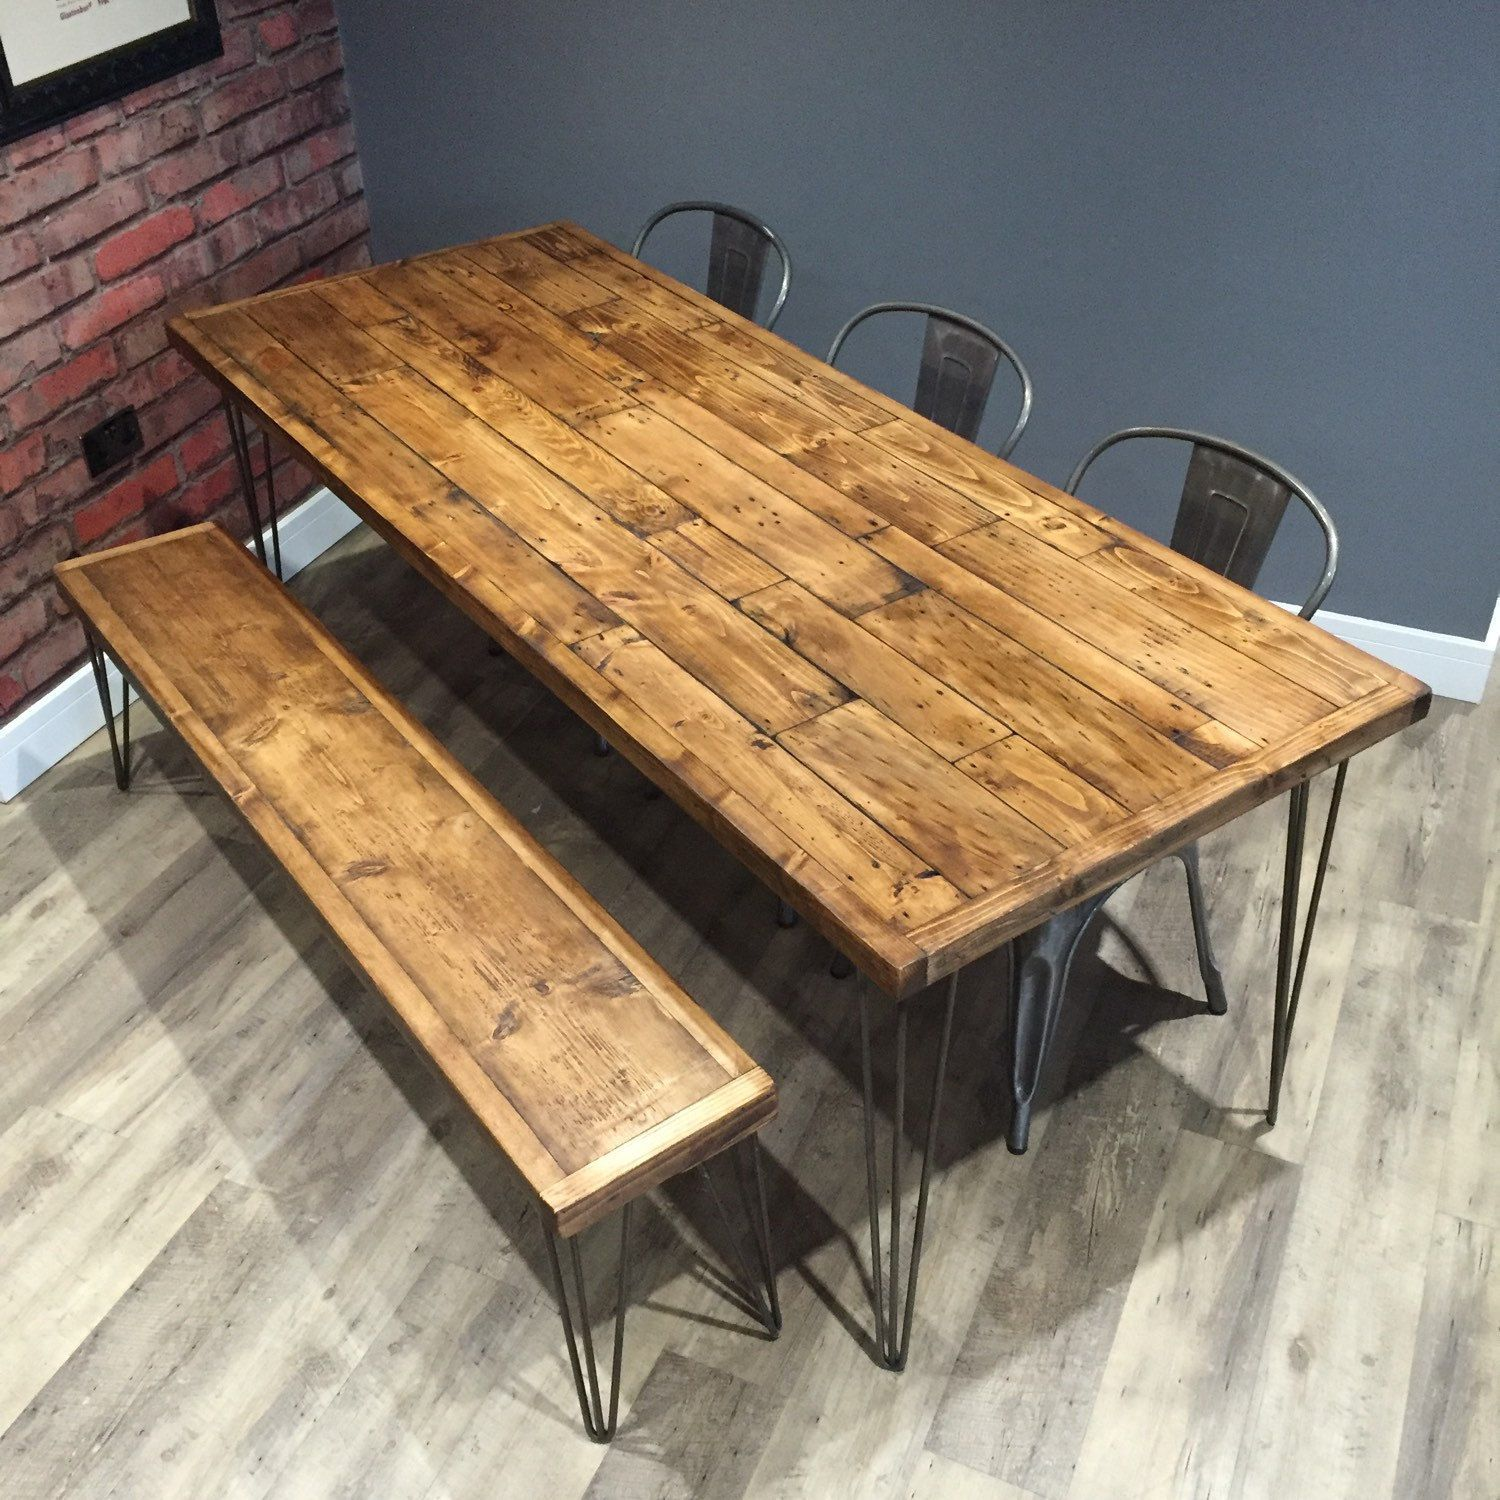 Industrial Reclaimed Wood Dining Table 140cm X 85cm With Bench